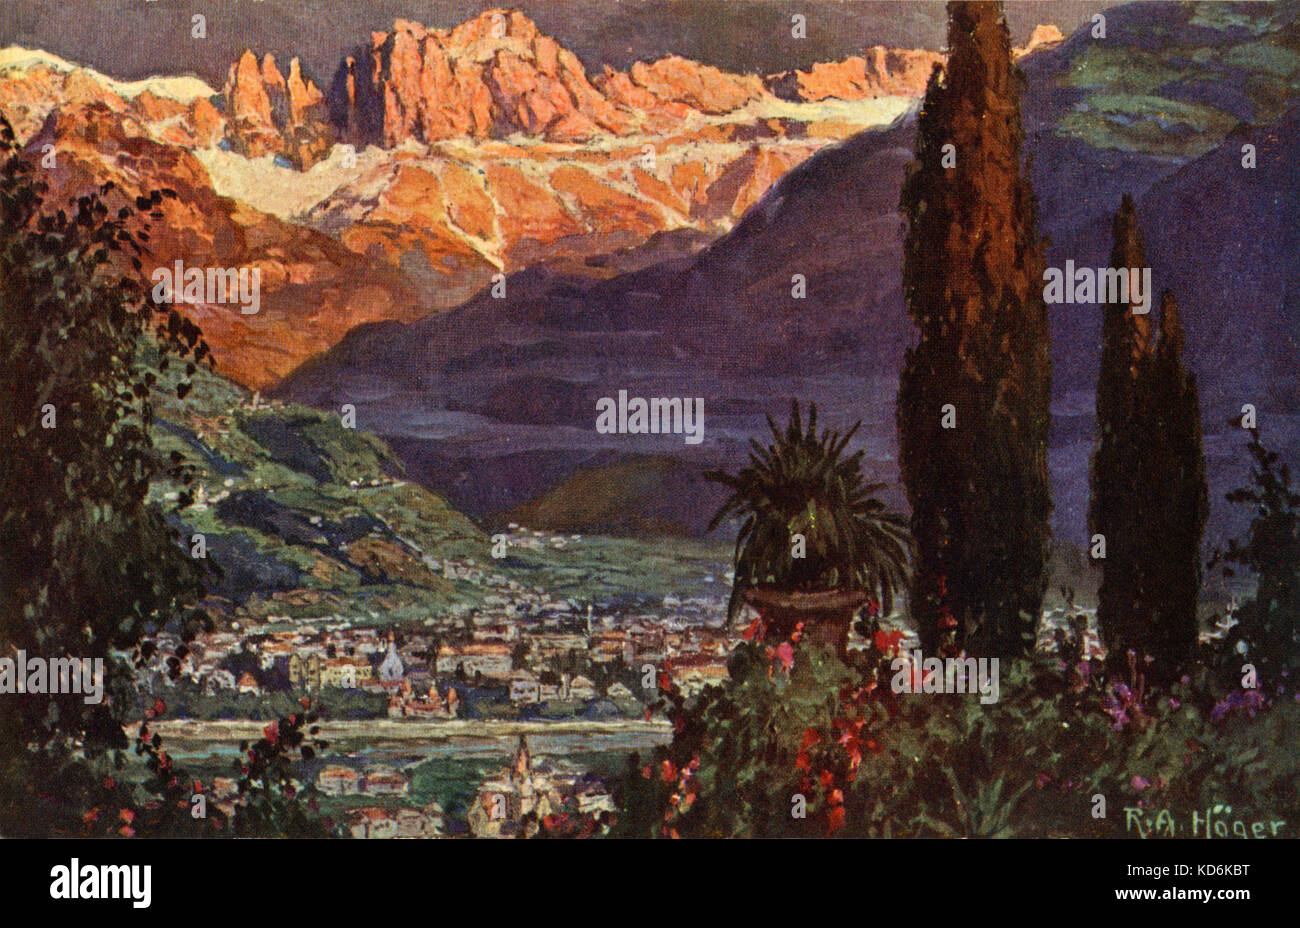 View of Bolzano, Toblach and Dolomite scenery, by Rudolf A lfred Hoger, where Mahler lived and composed 9th and - Stock Image